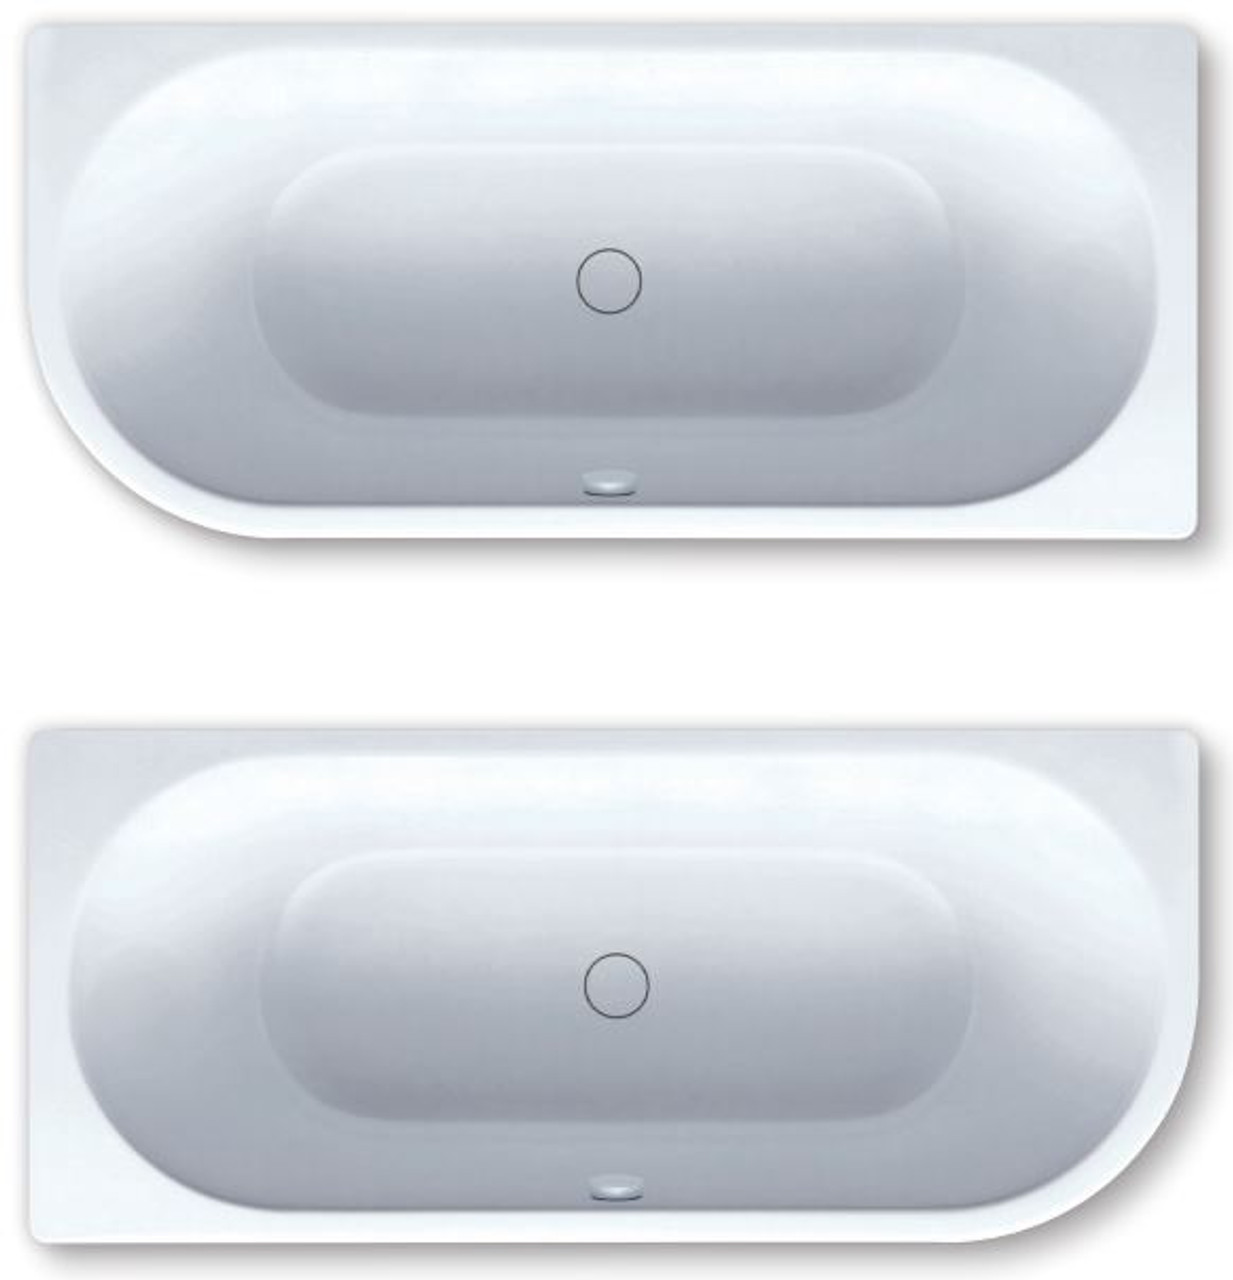 Bathe Kaldewei Centro Duo 1 Left Or Right 1700X750MM 01-129-06